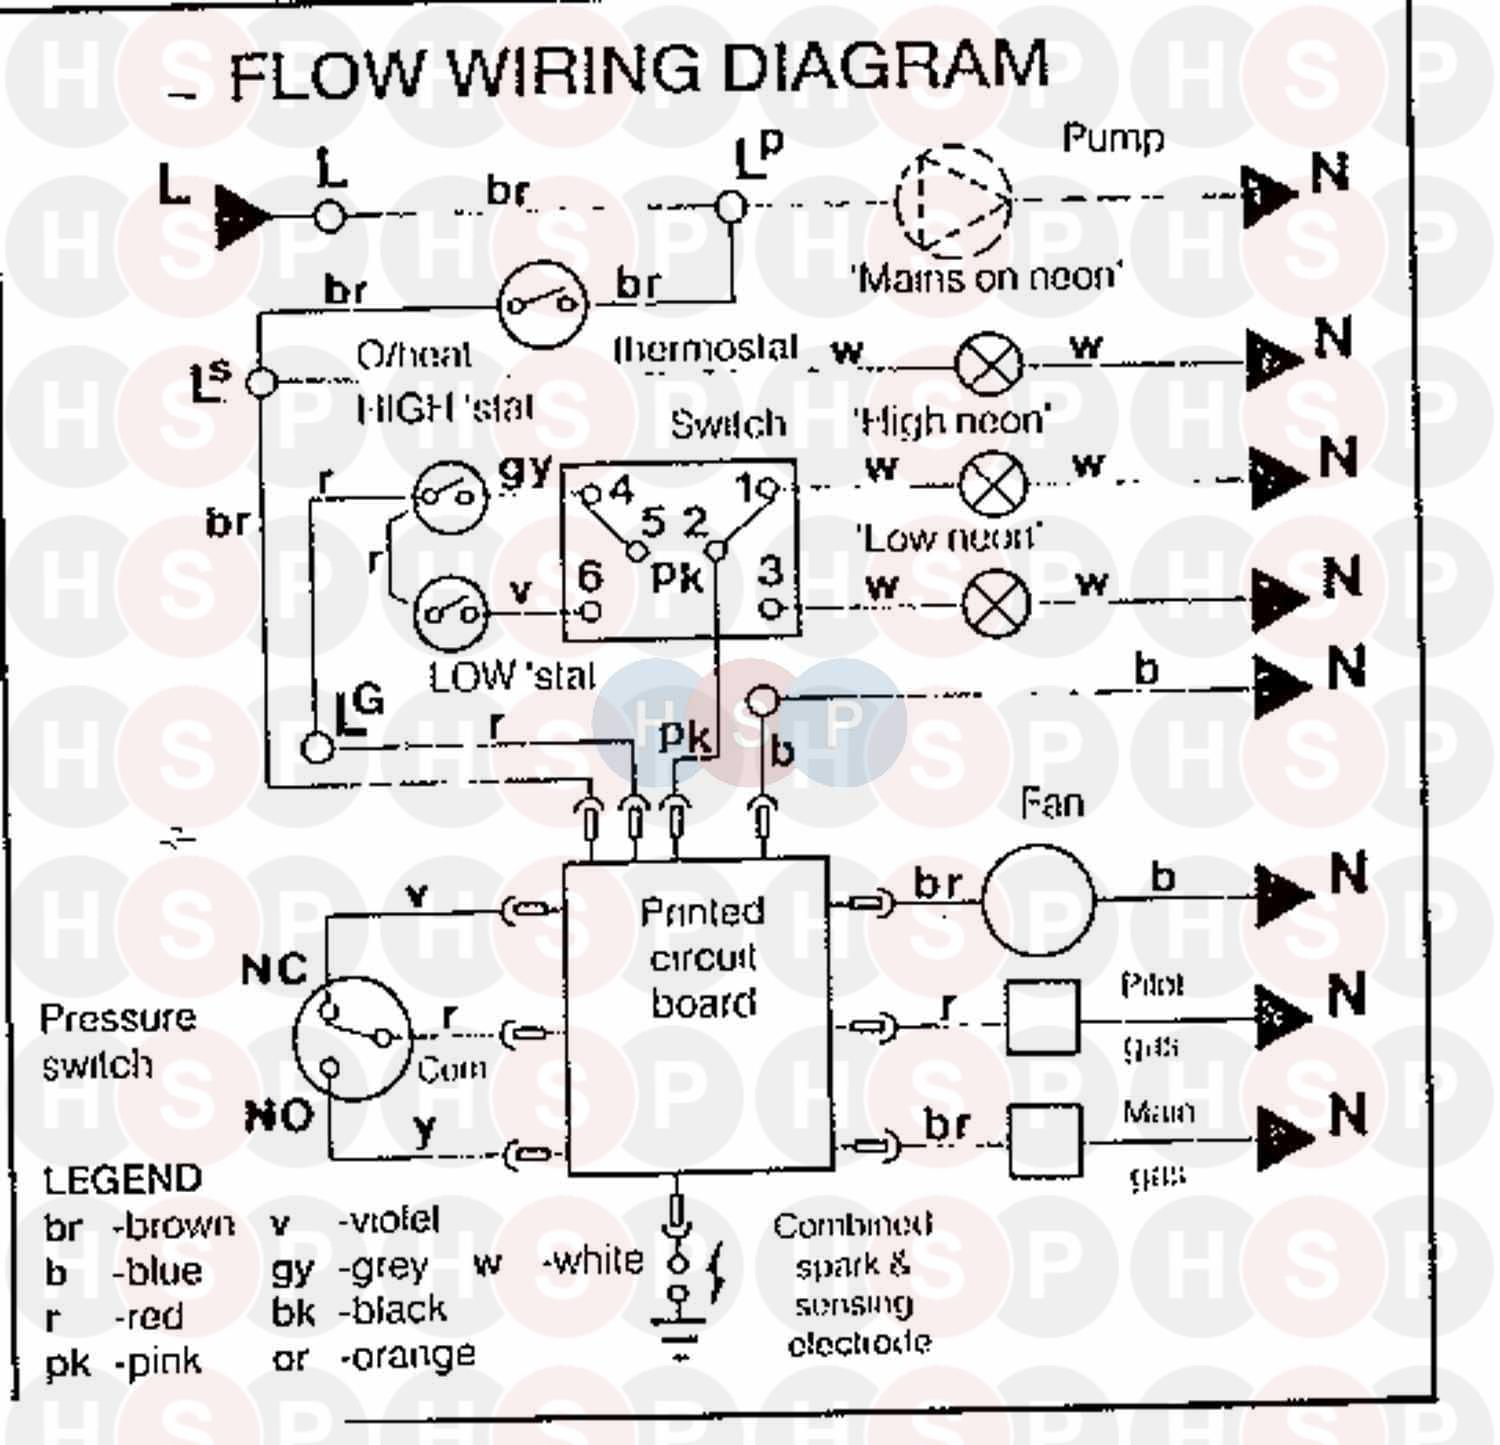 Ideal COMPACT 40F Appliance Diagram (Wiring Diagram 1